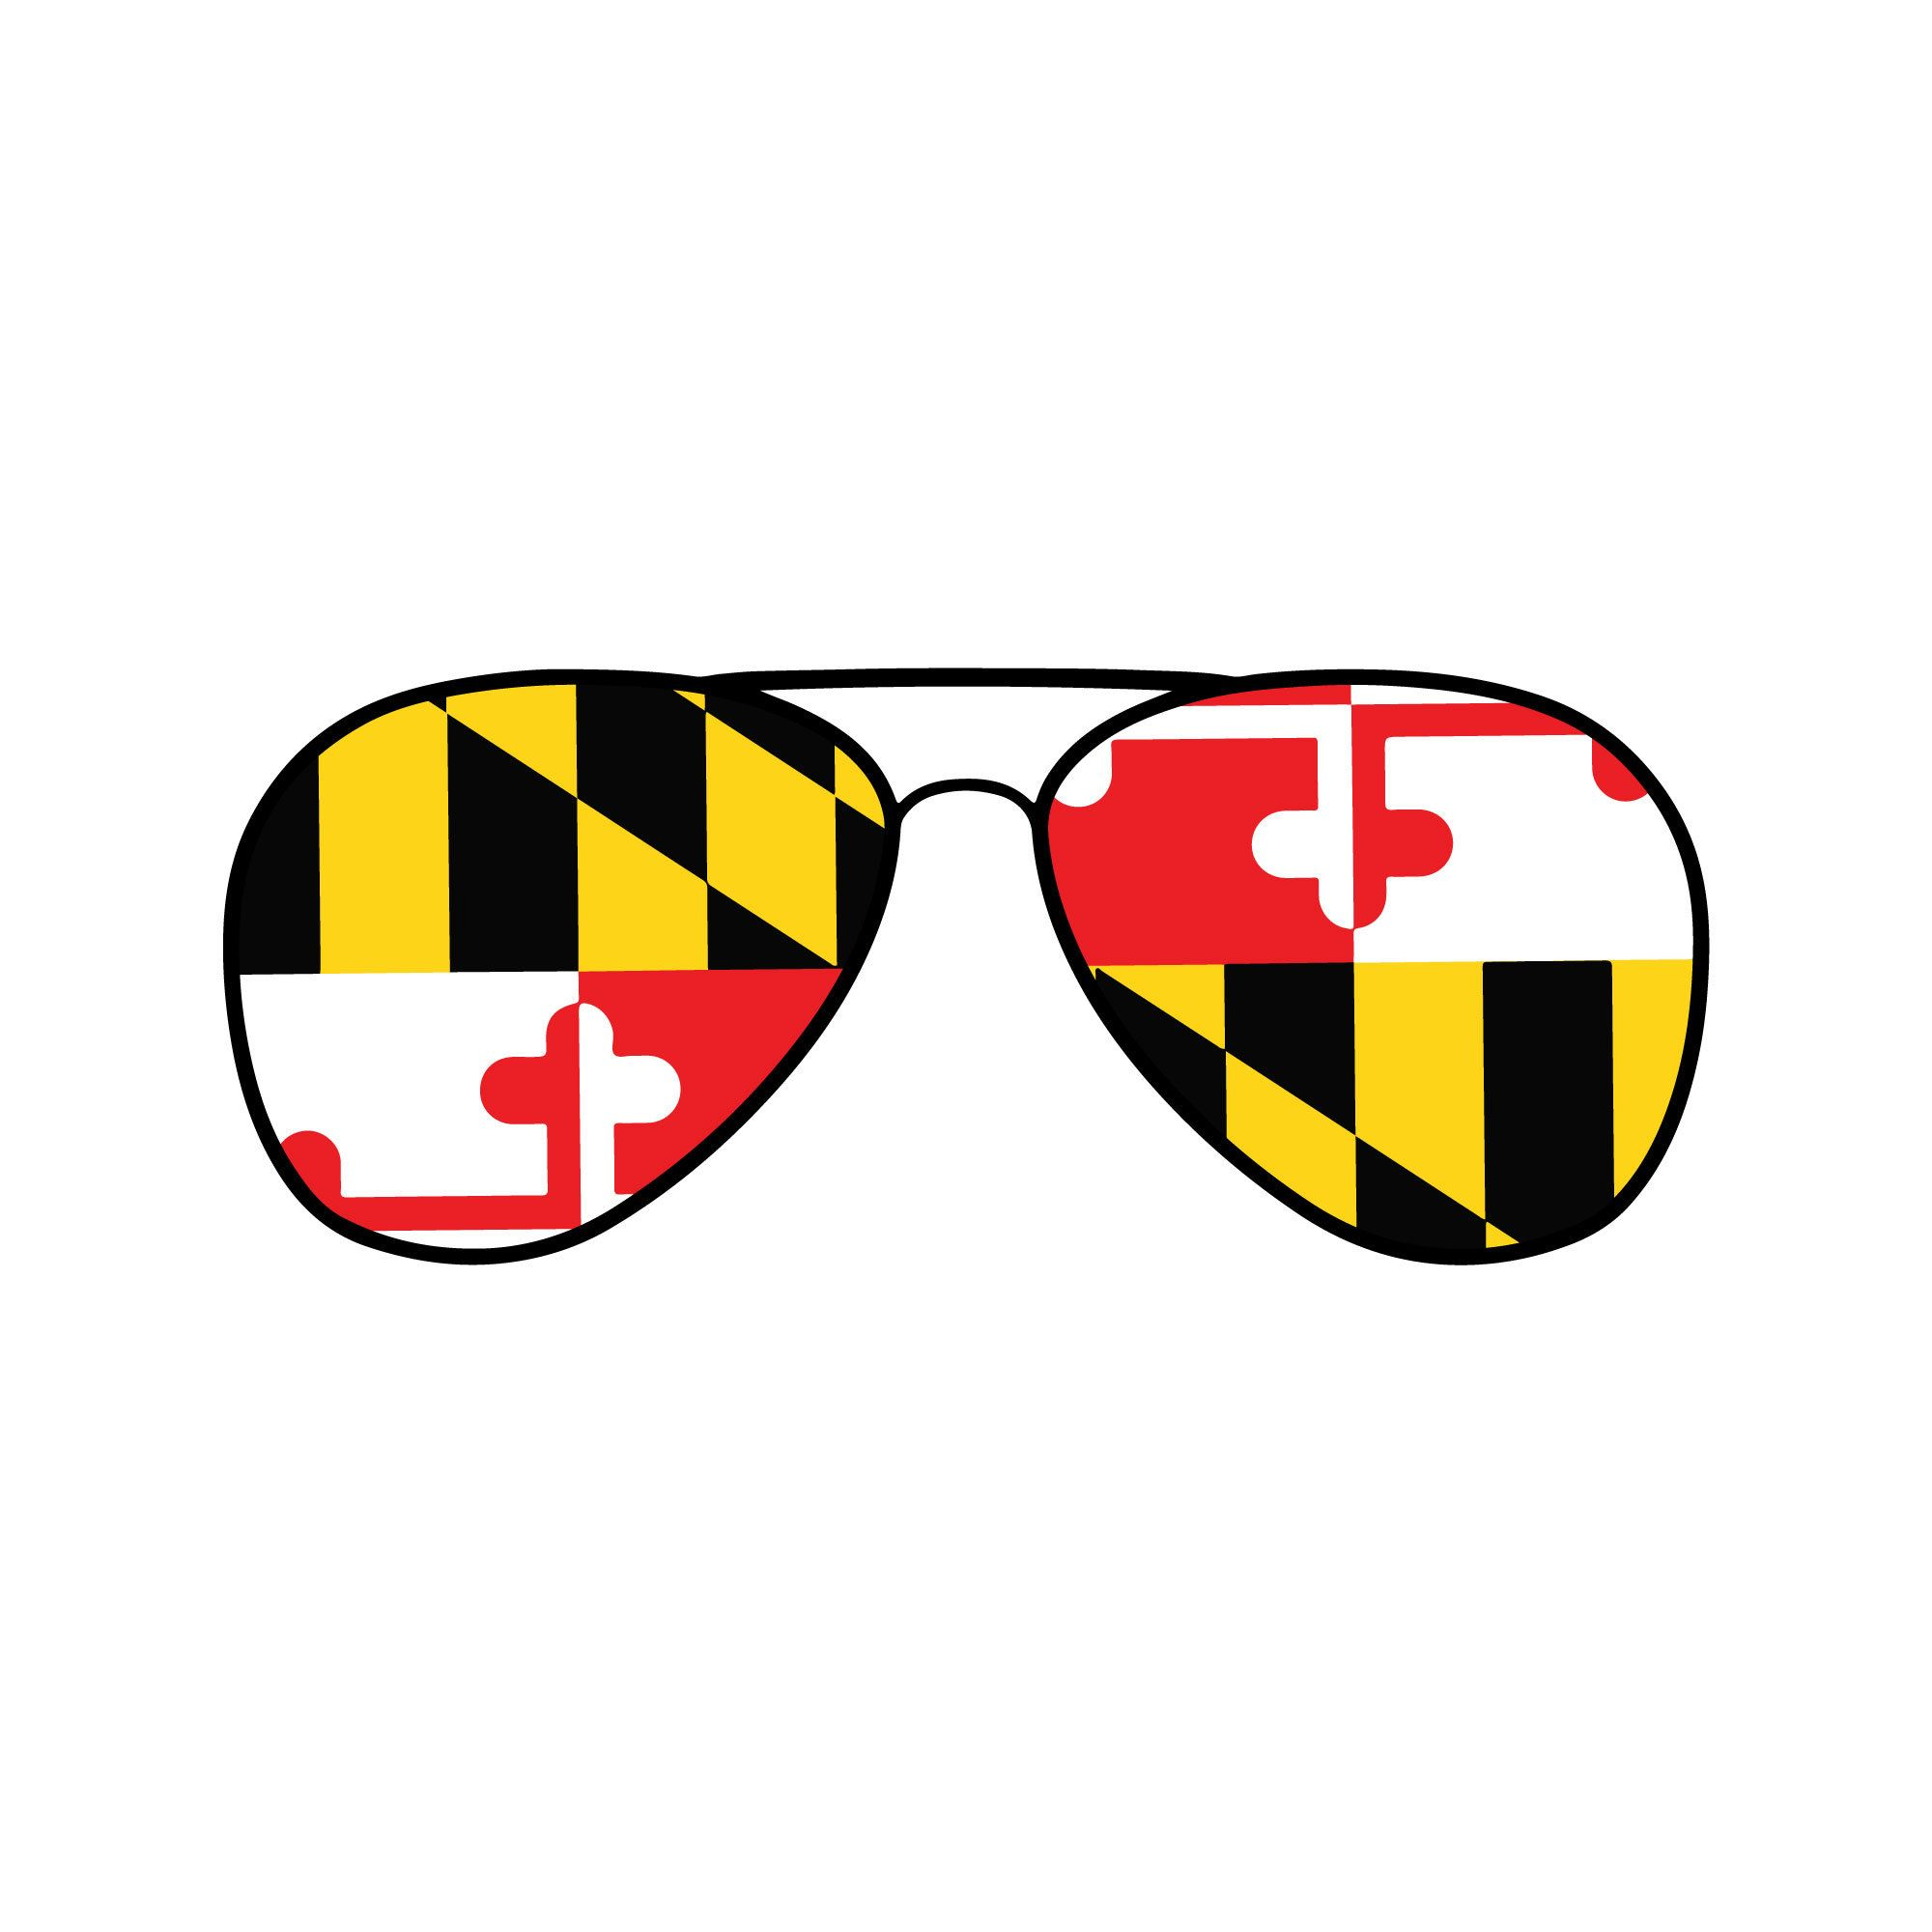 Maryland Flag Sunglasses Car Decal Maryland State Sunglasses Etsy In 2020 Maryland Flag Maryland Flag Decal Police Decal